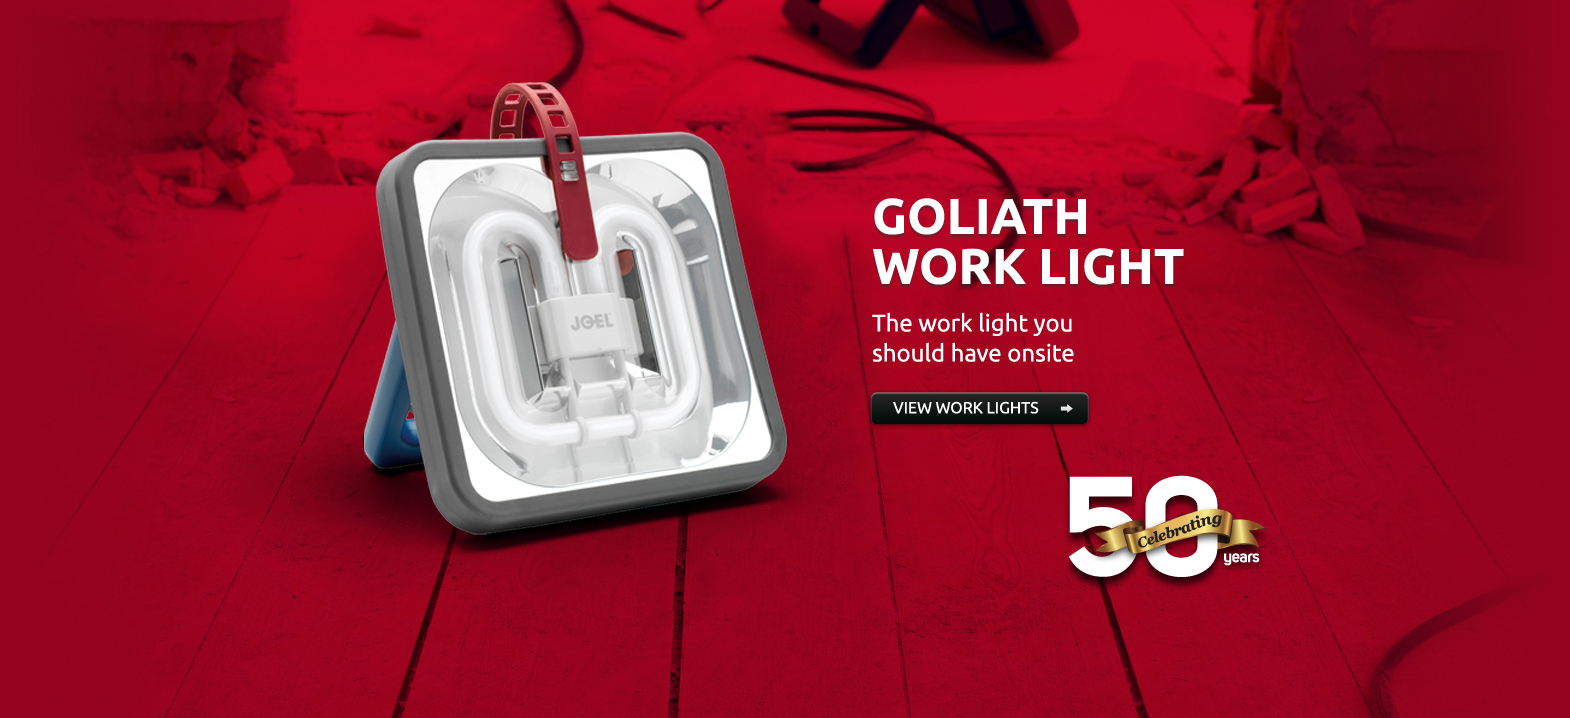 Goliath Worklight